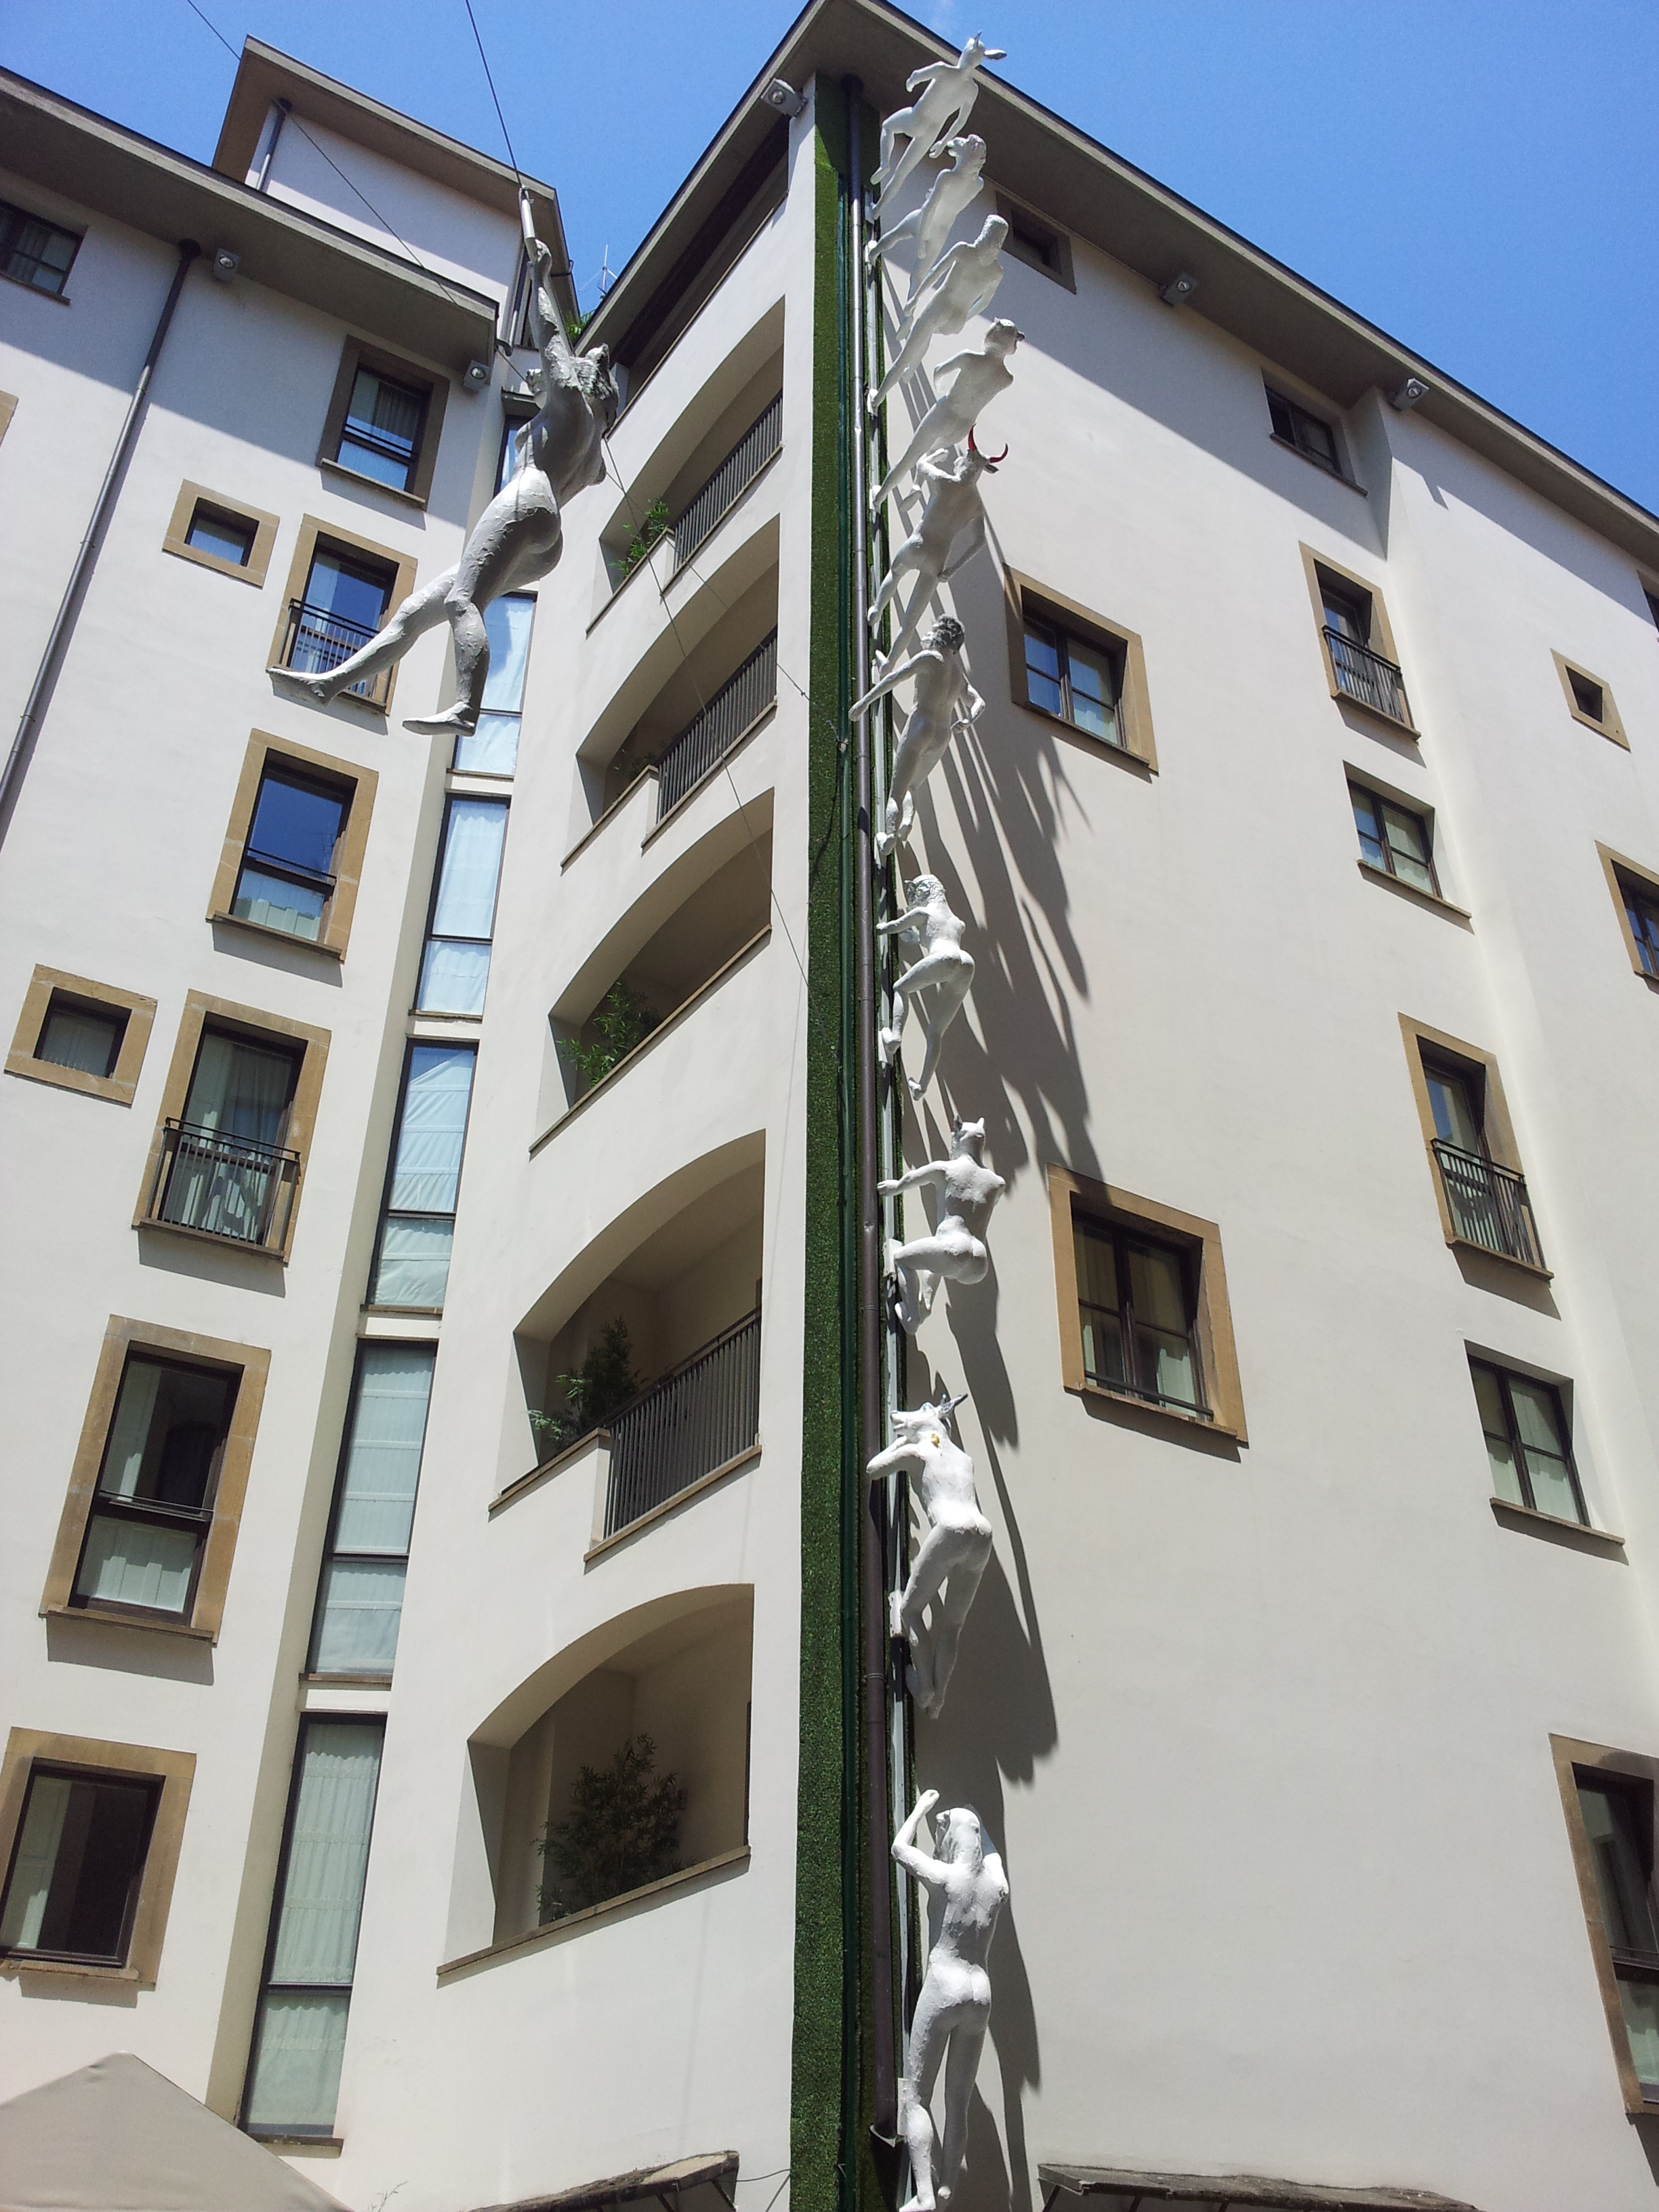 Sculptures climbing the Art gallery hotel in #Florence